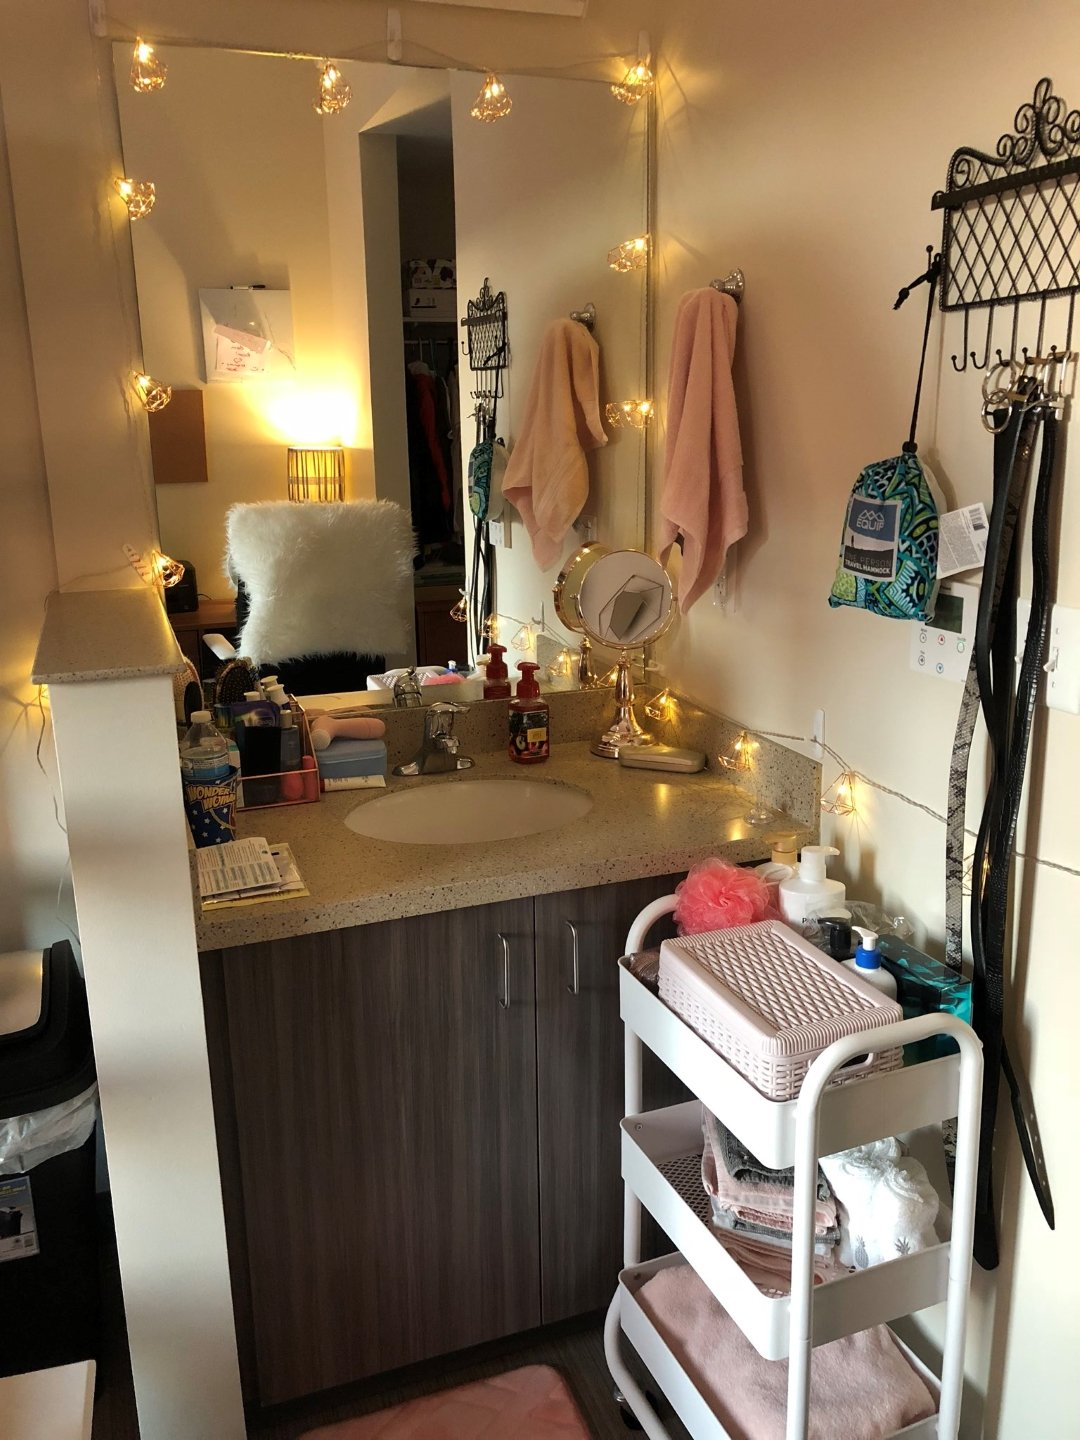 dorm sink area wth fairy lights and 3 tier rolling cart